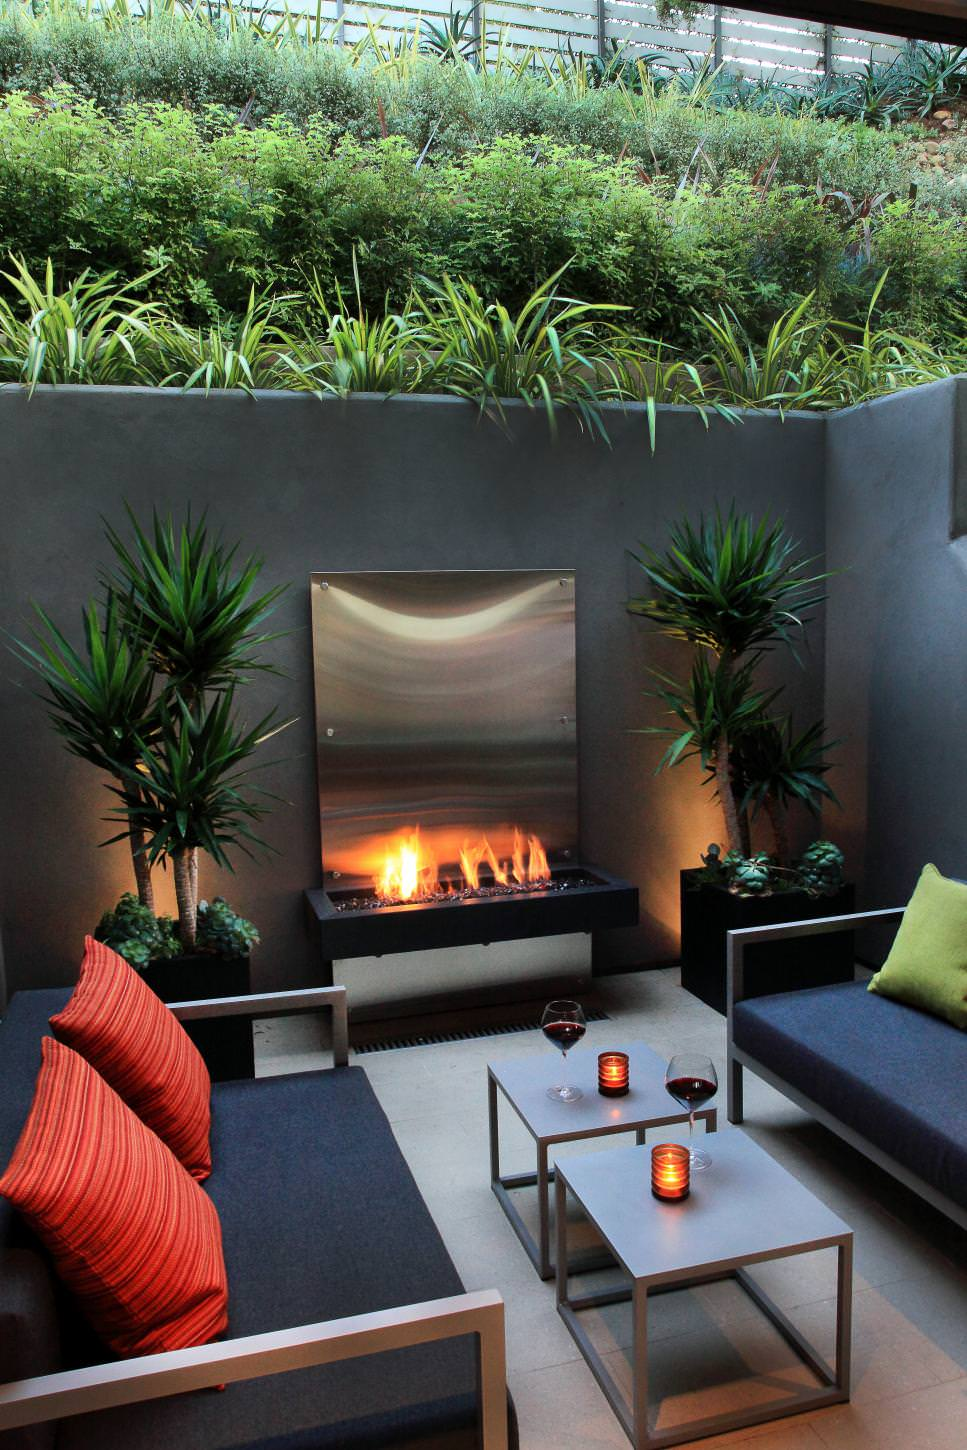 23 concrete wall designs decor ideas design trends for Outside design ideas